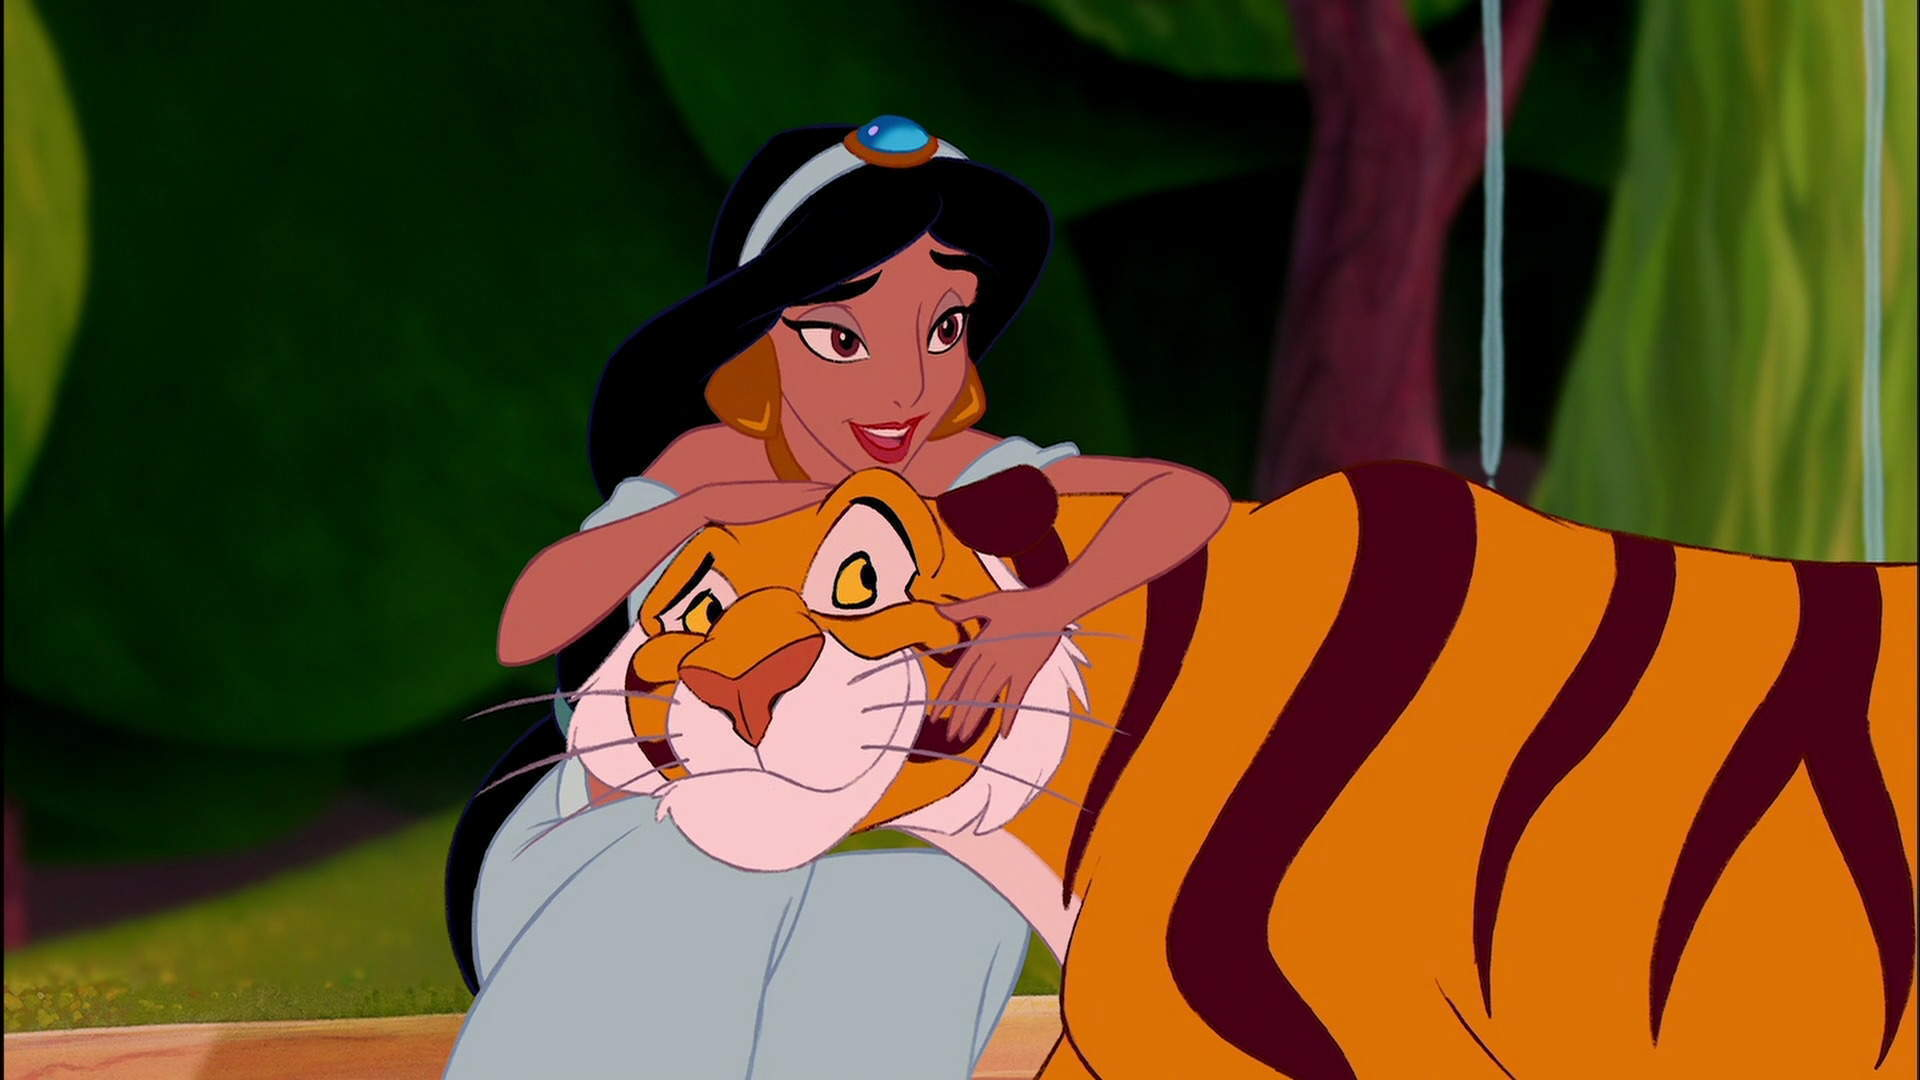 Disney's failure to find an Arab Princess Jasmine for Aladdin shows the dire state of diversity in film